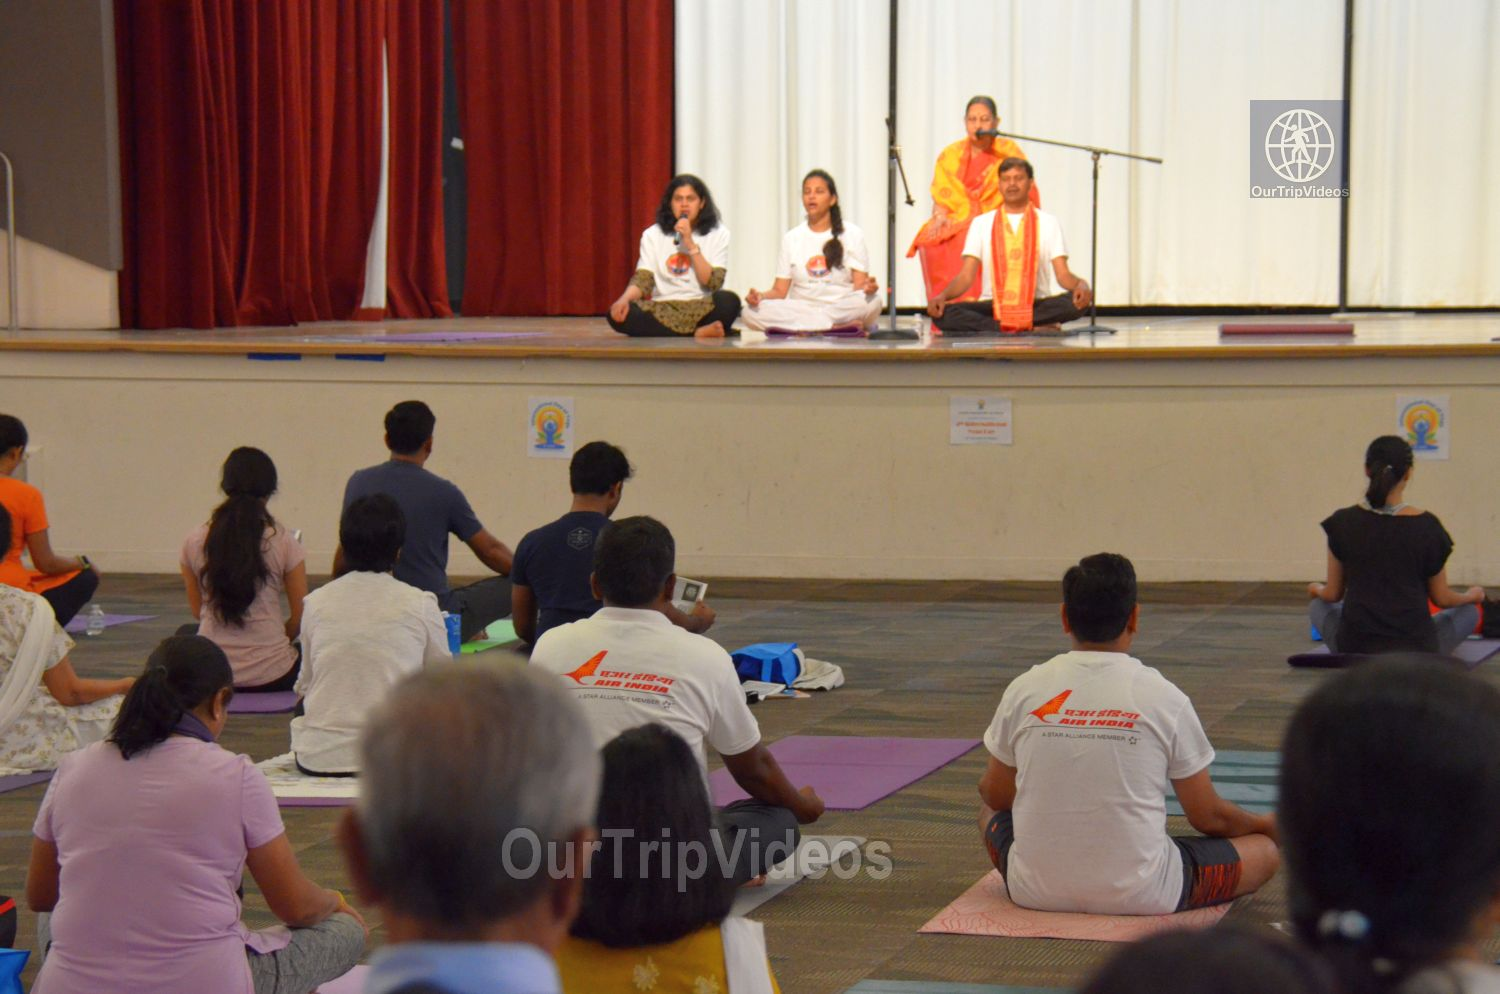 International Yoga Day at ICC, Milpitas, CA, USA - Picture 31 of 50